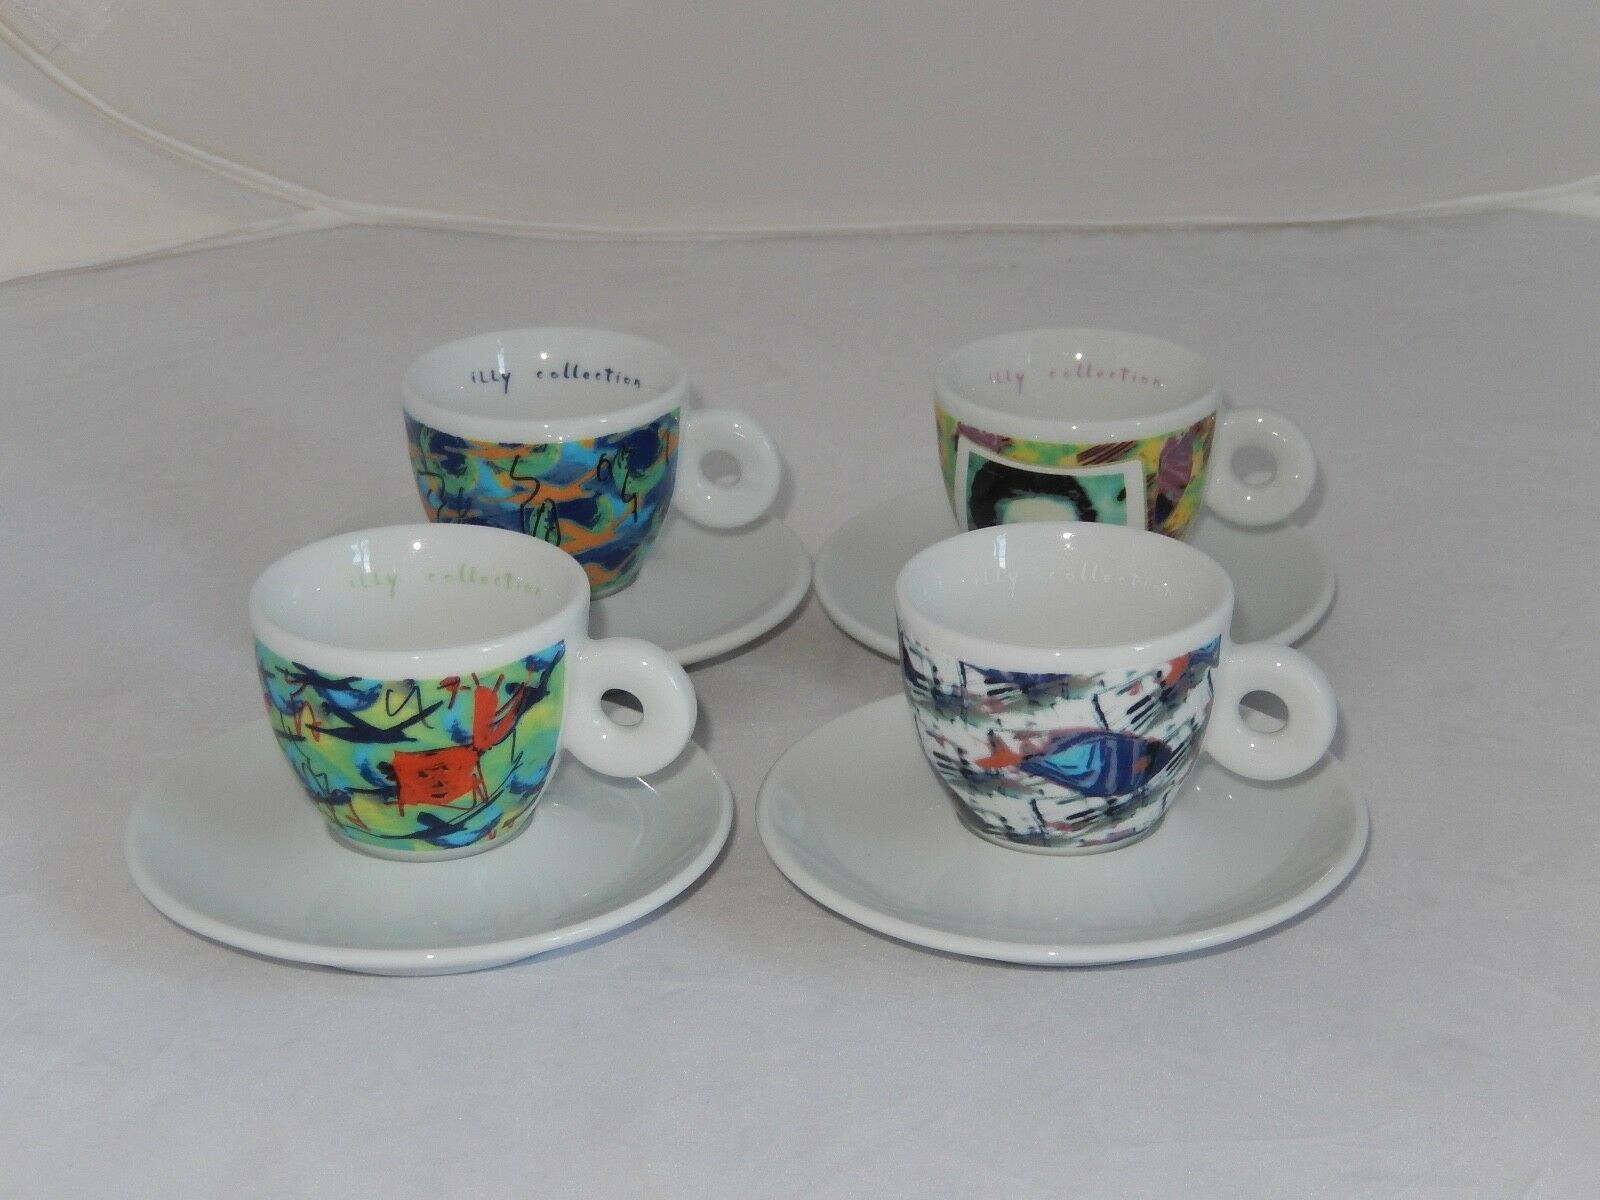 ILLY COLLECTION 4 Espresso Tasses Nam June Paik 1996 TOP